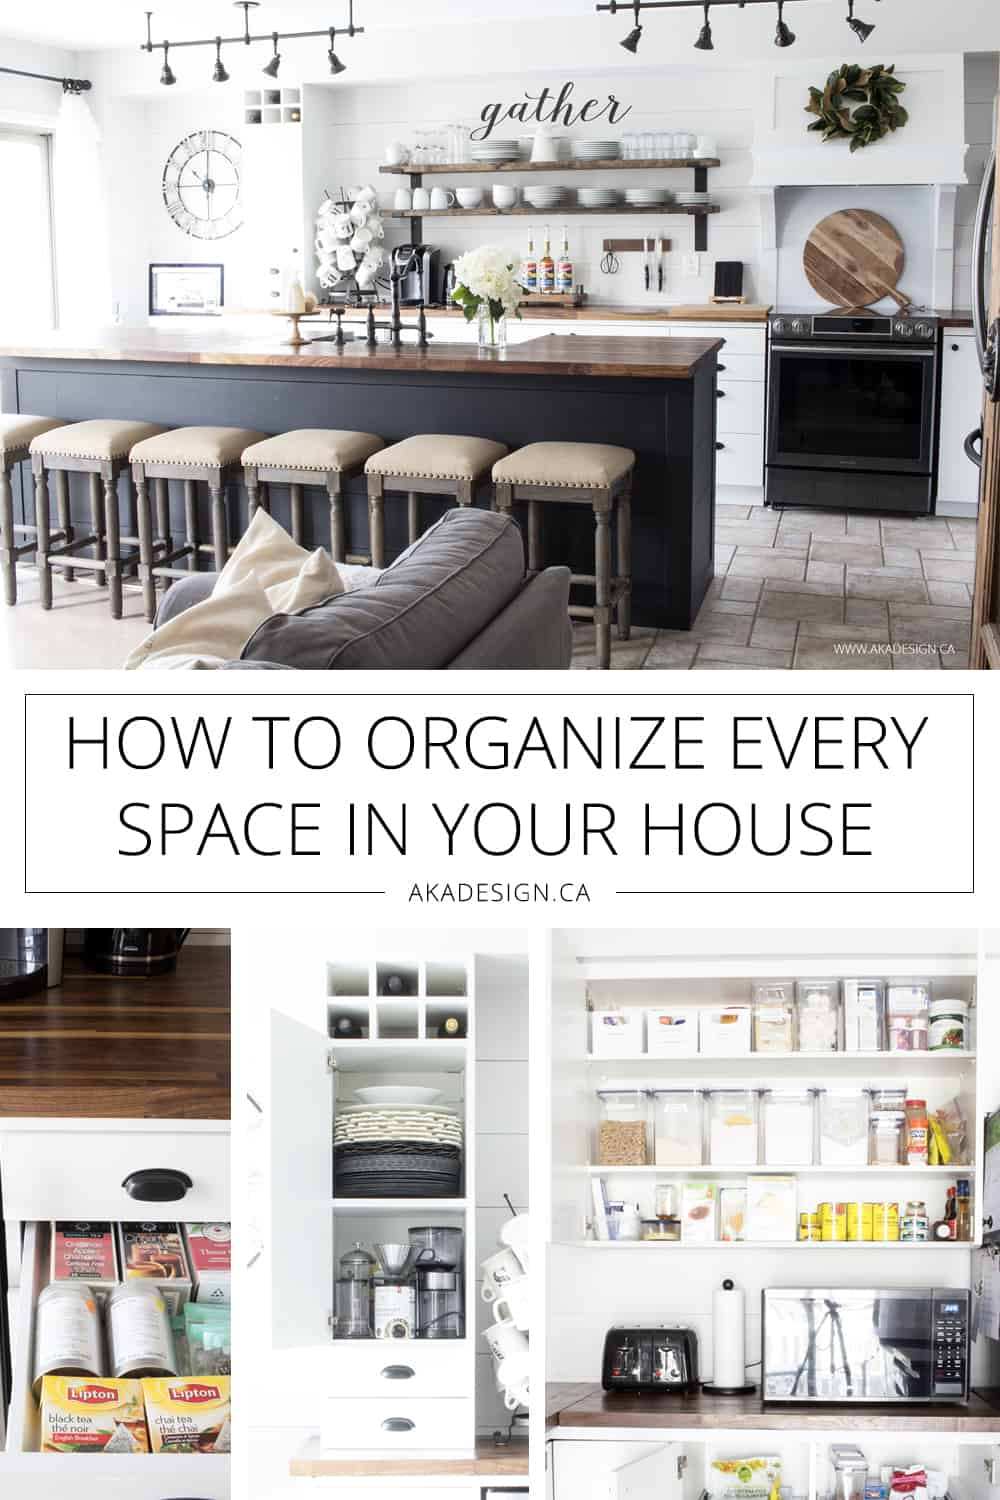 Learn how to reduce clutter, clean up, and store more all over the home with these genius organizing ideas.